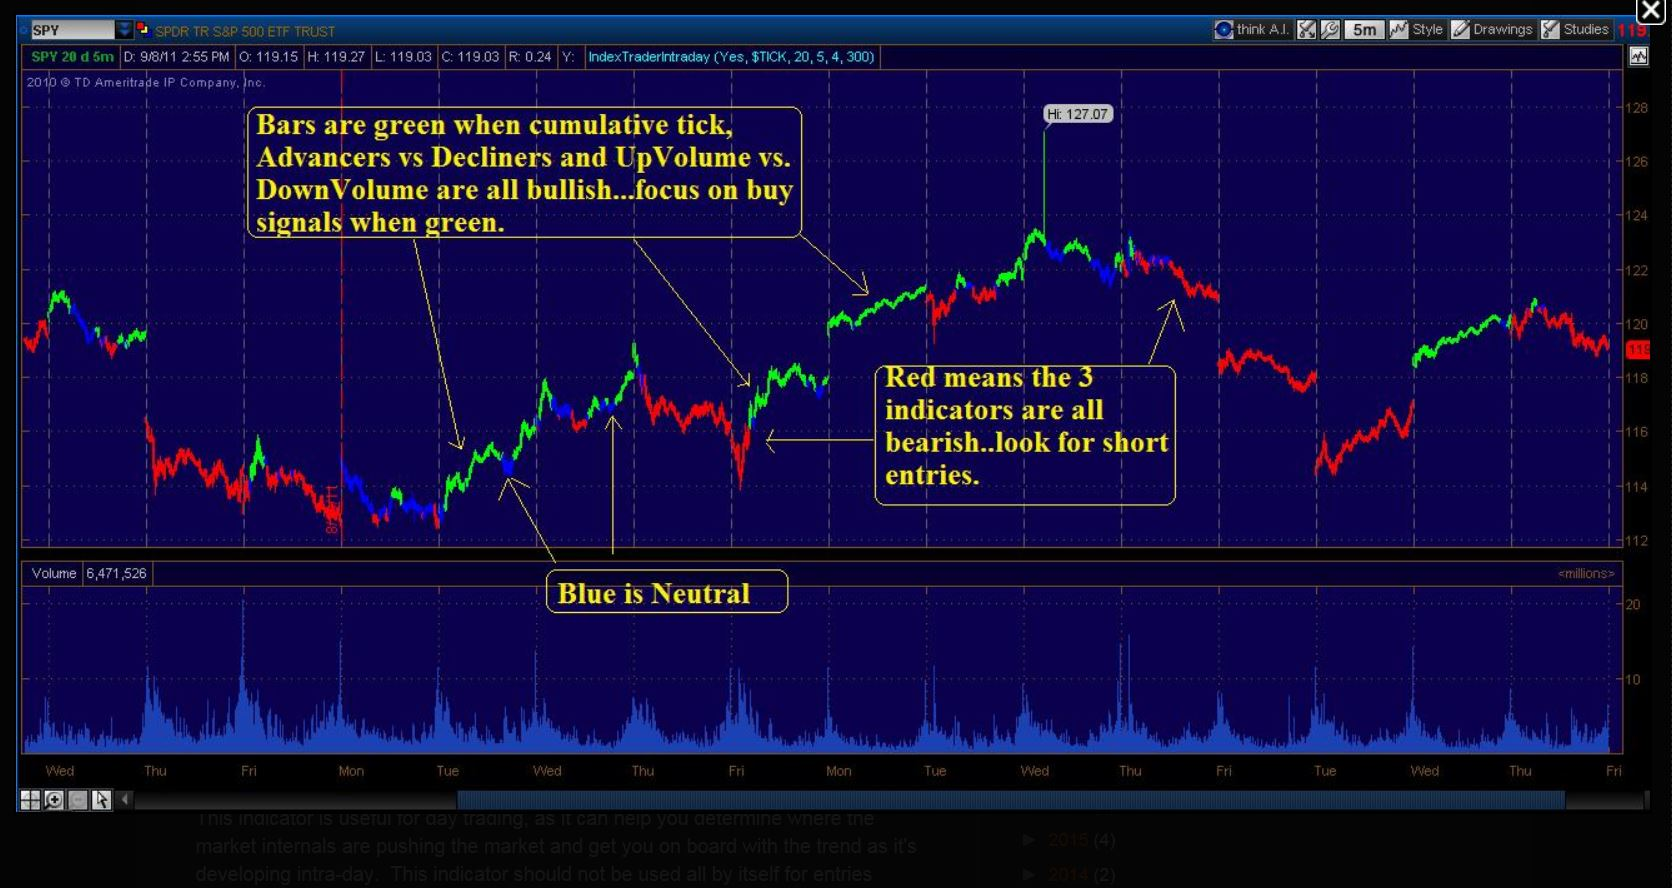 ThinkorSwim TA and More: here is that cuml/tick study > it Only works